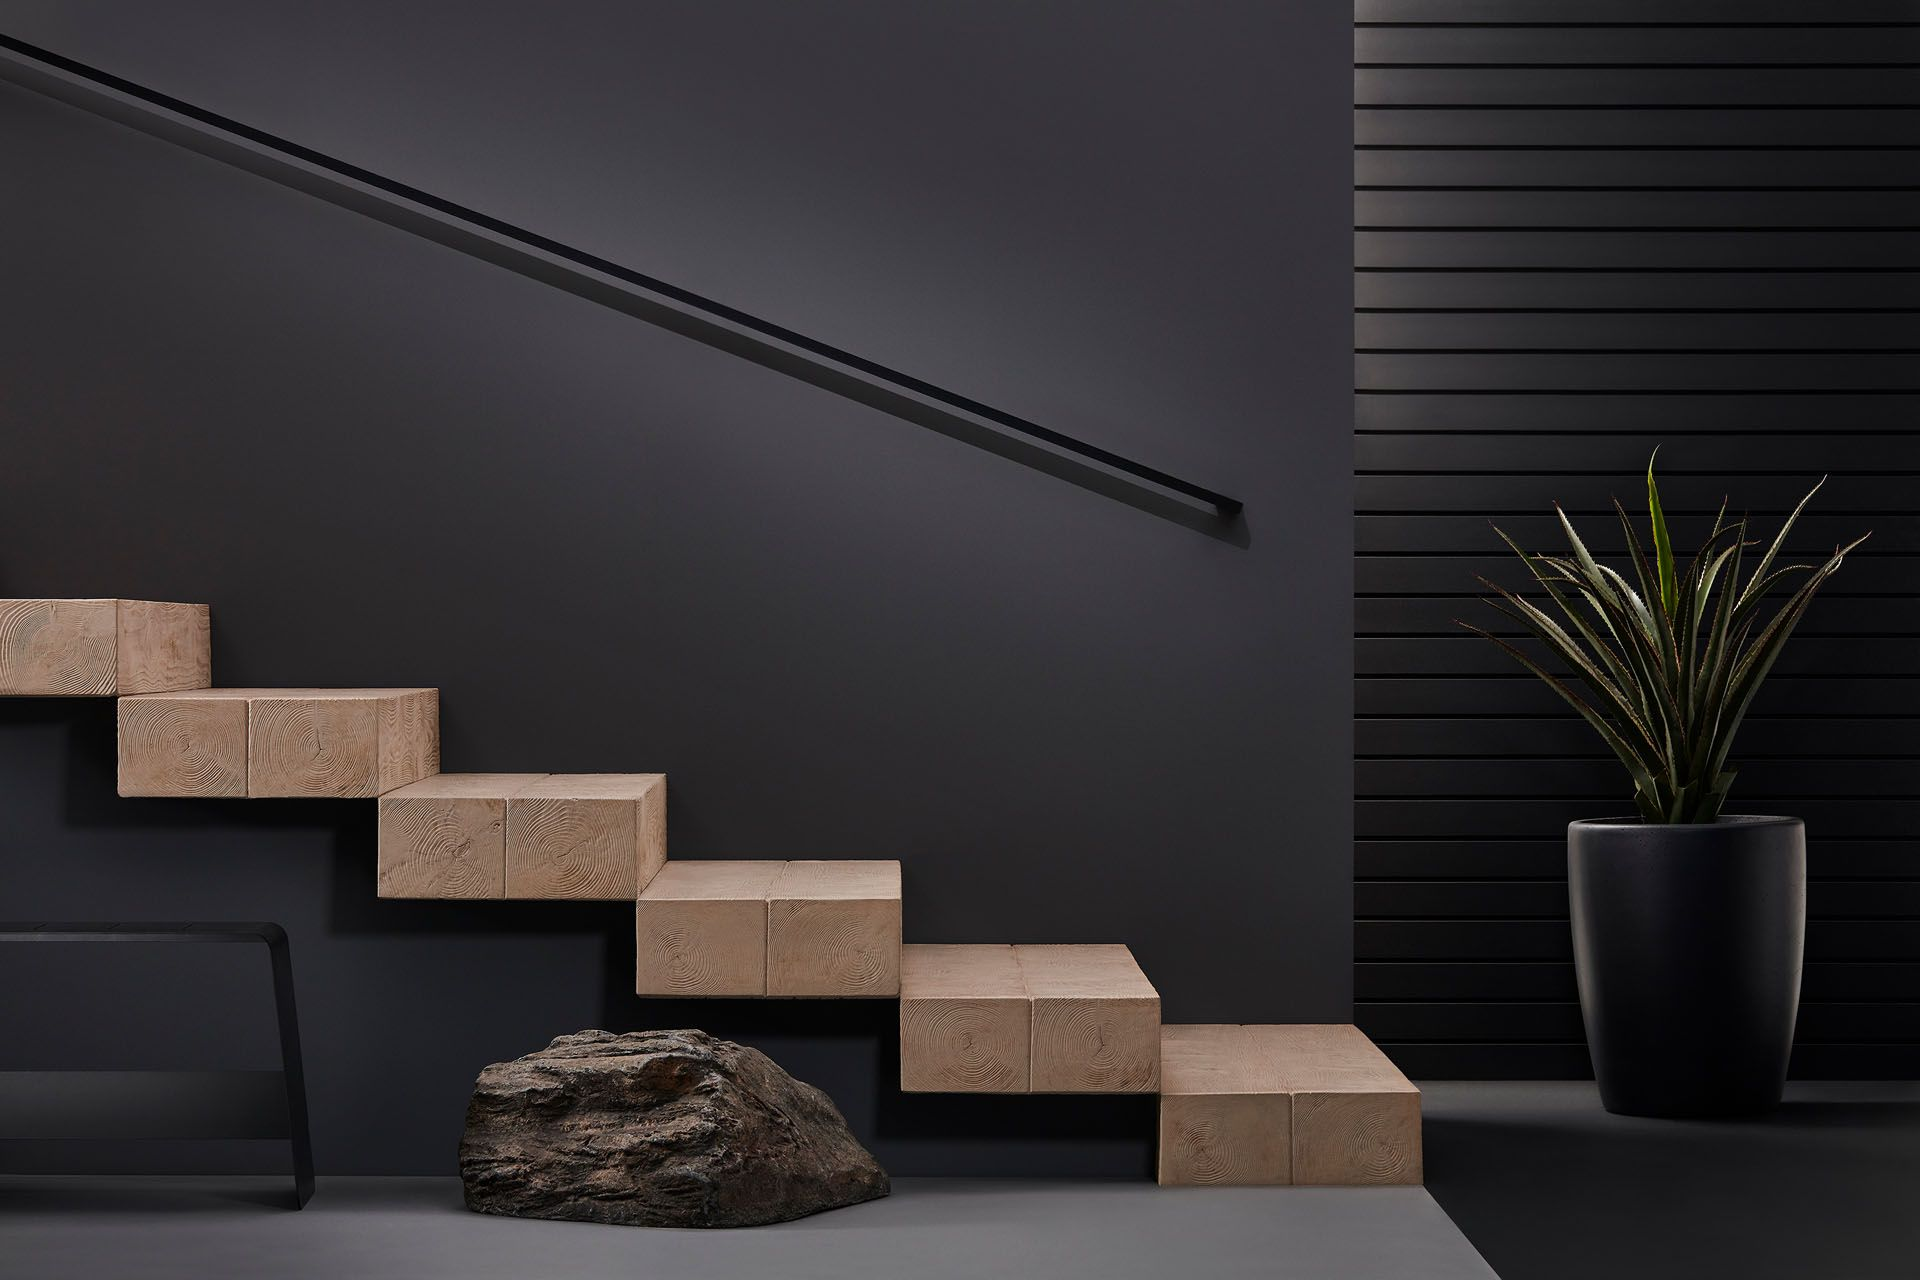 wooden stairs beside rock and potted plant by Mathieu Levesque for Techo Bloc